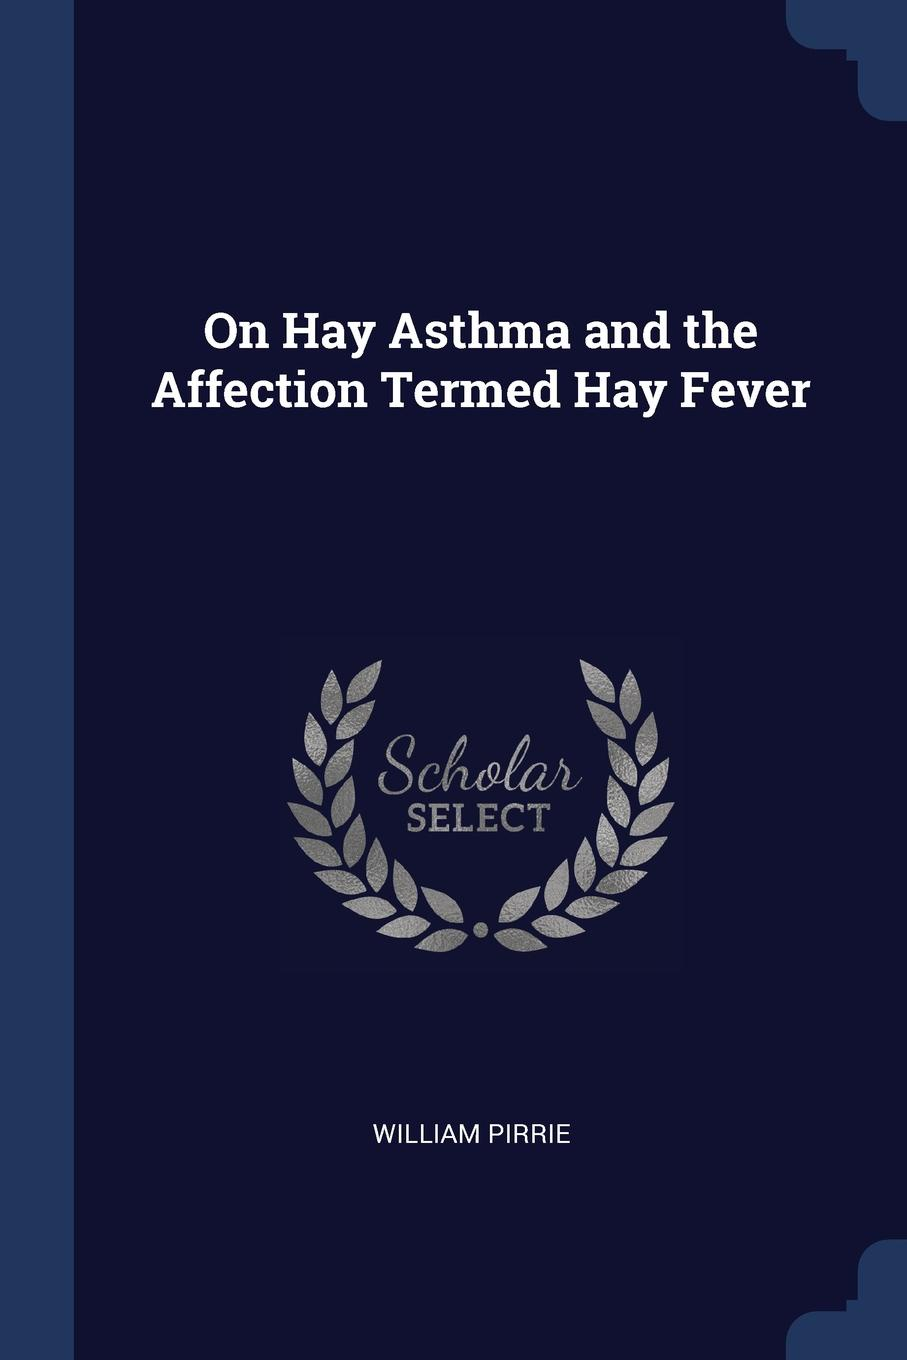 William Pirrie On Hay Asthma and the Affection Termed Fever